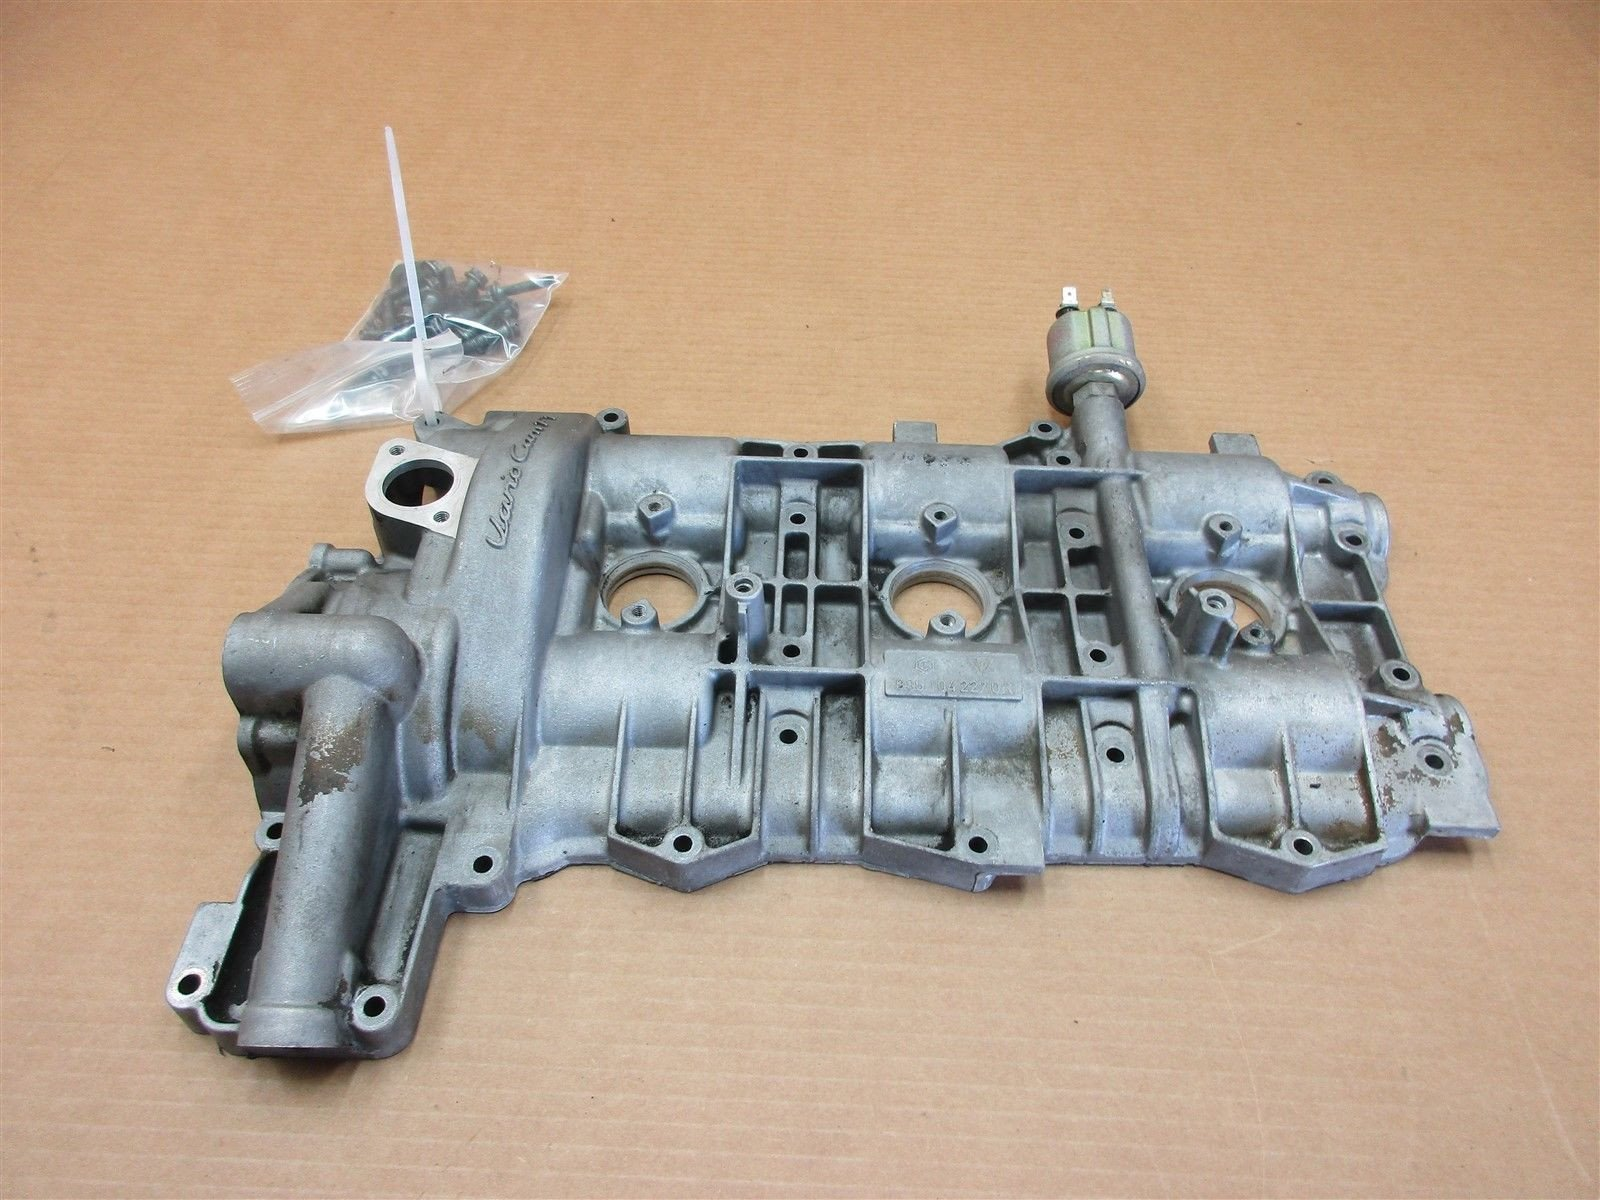 99 Carrera 911 Porsche 996 Cabrio Engine 3.4 R VALVE COVER 9961042270R 85,779